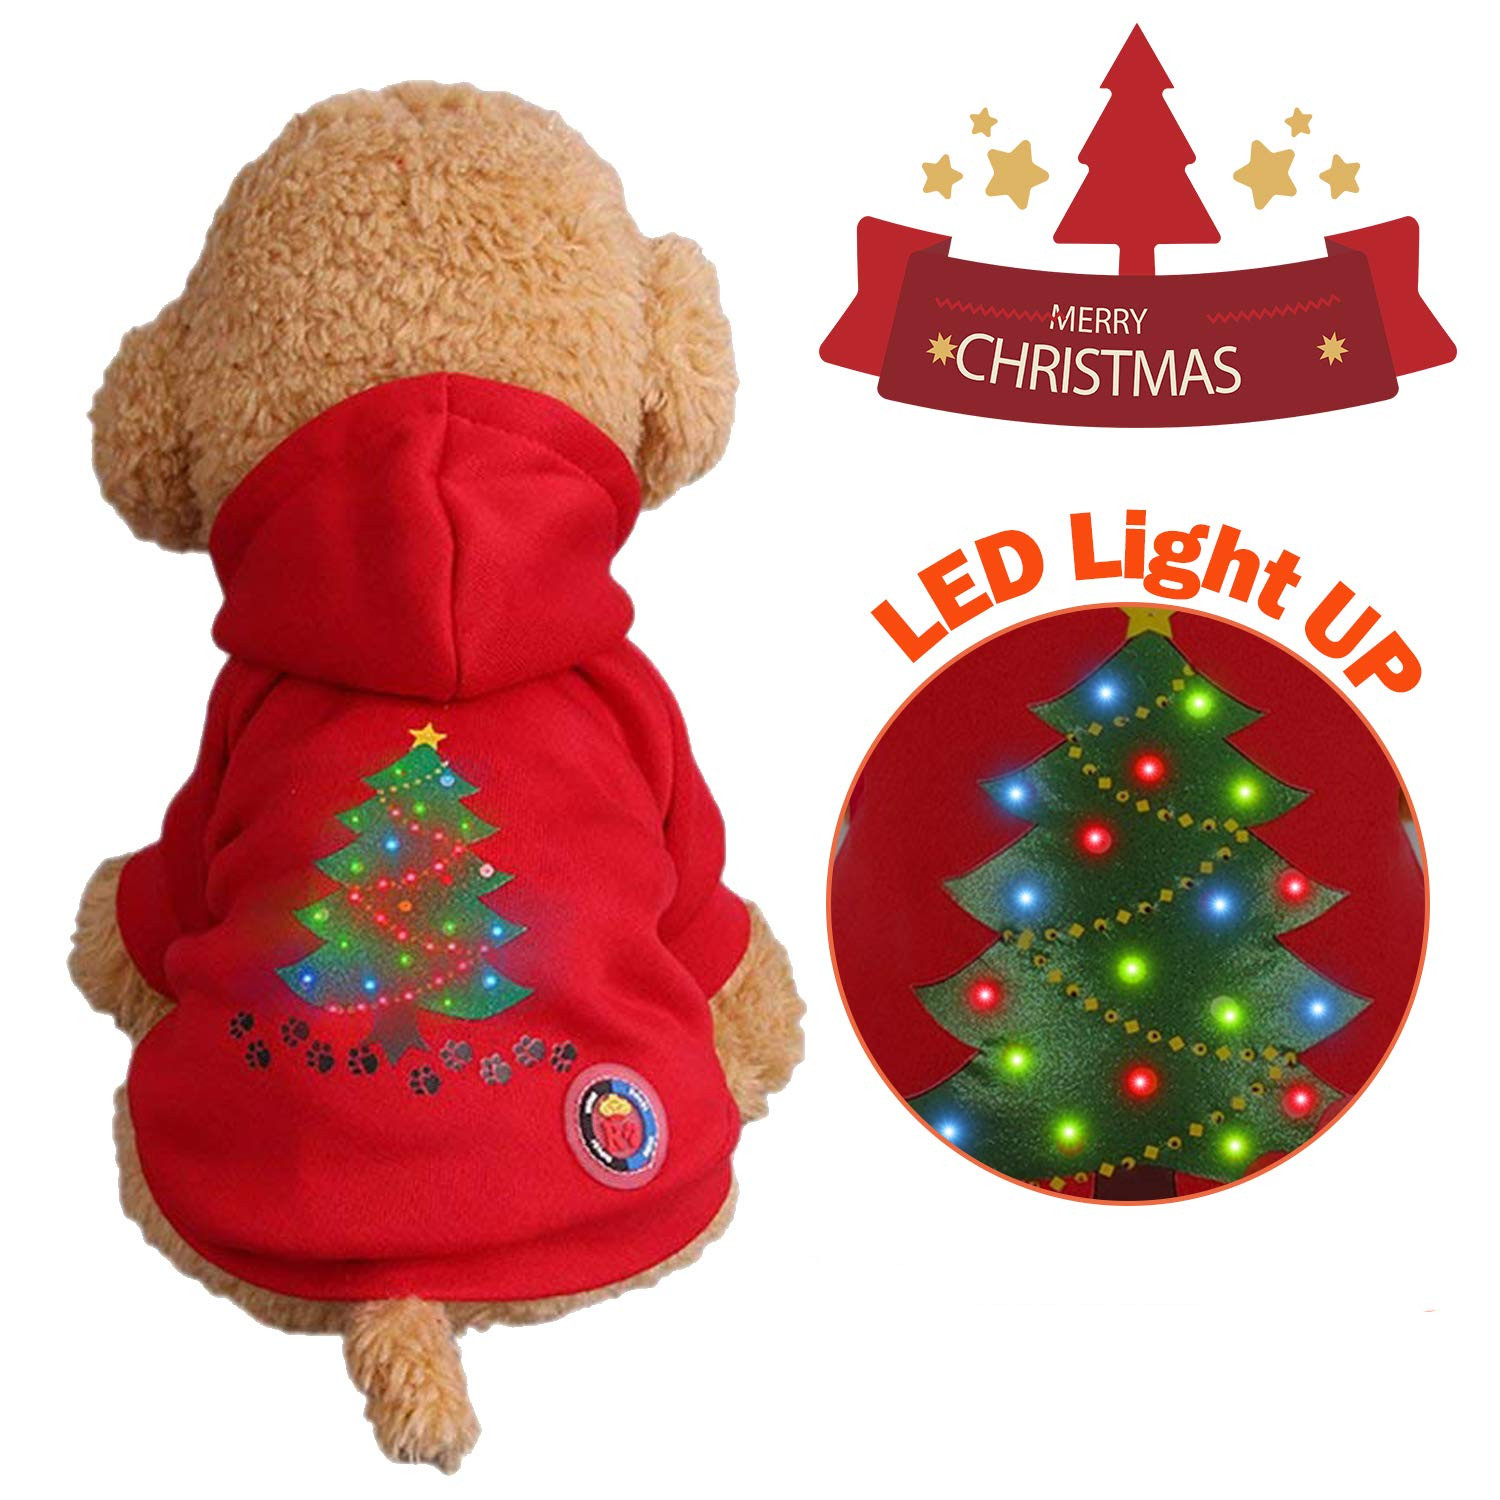 Red Christmas Dog Paw Print Large Red Christmas Dog Paw Print Large Garlagy Christmas LED Light up Pet Dog Cats Sweater Hoodies Sweater Xmas Tree Santa LED Clothes Medium Large Animal Puppy Kitten Outfit Vest Shirt Coat Holiday Festival Party